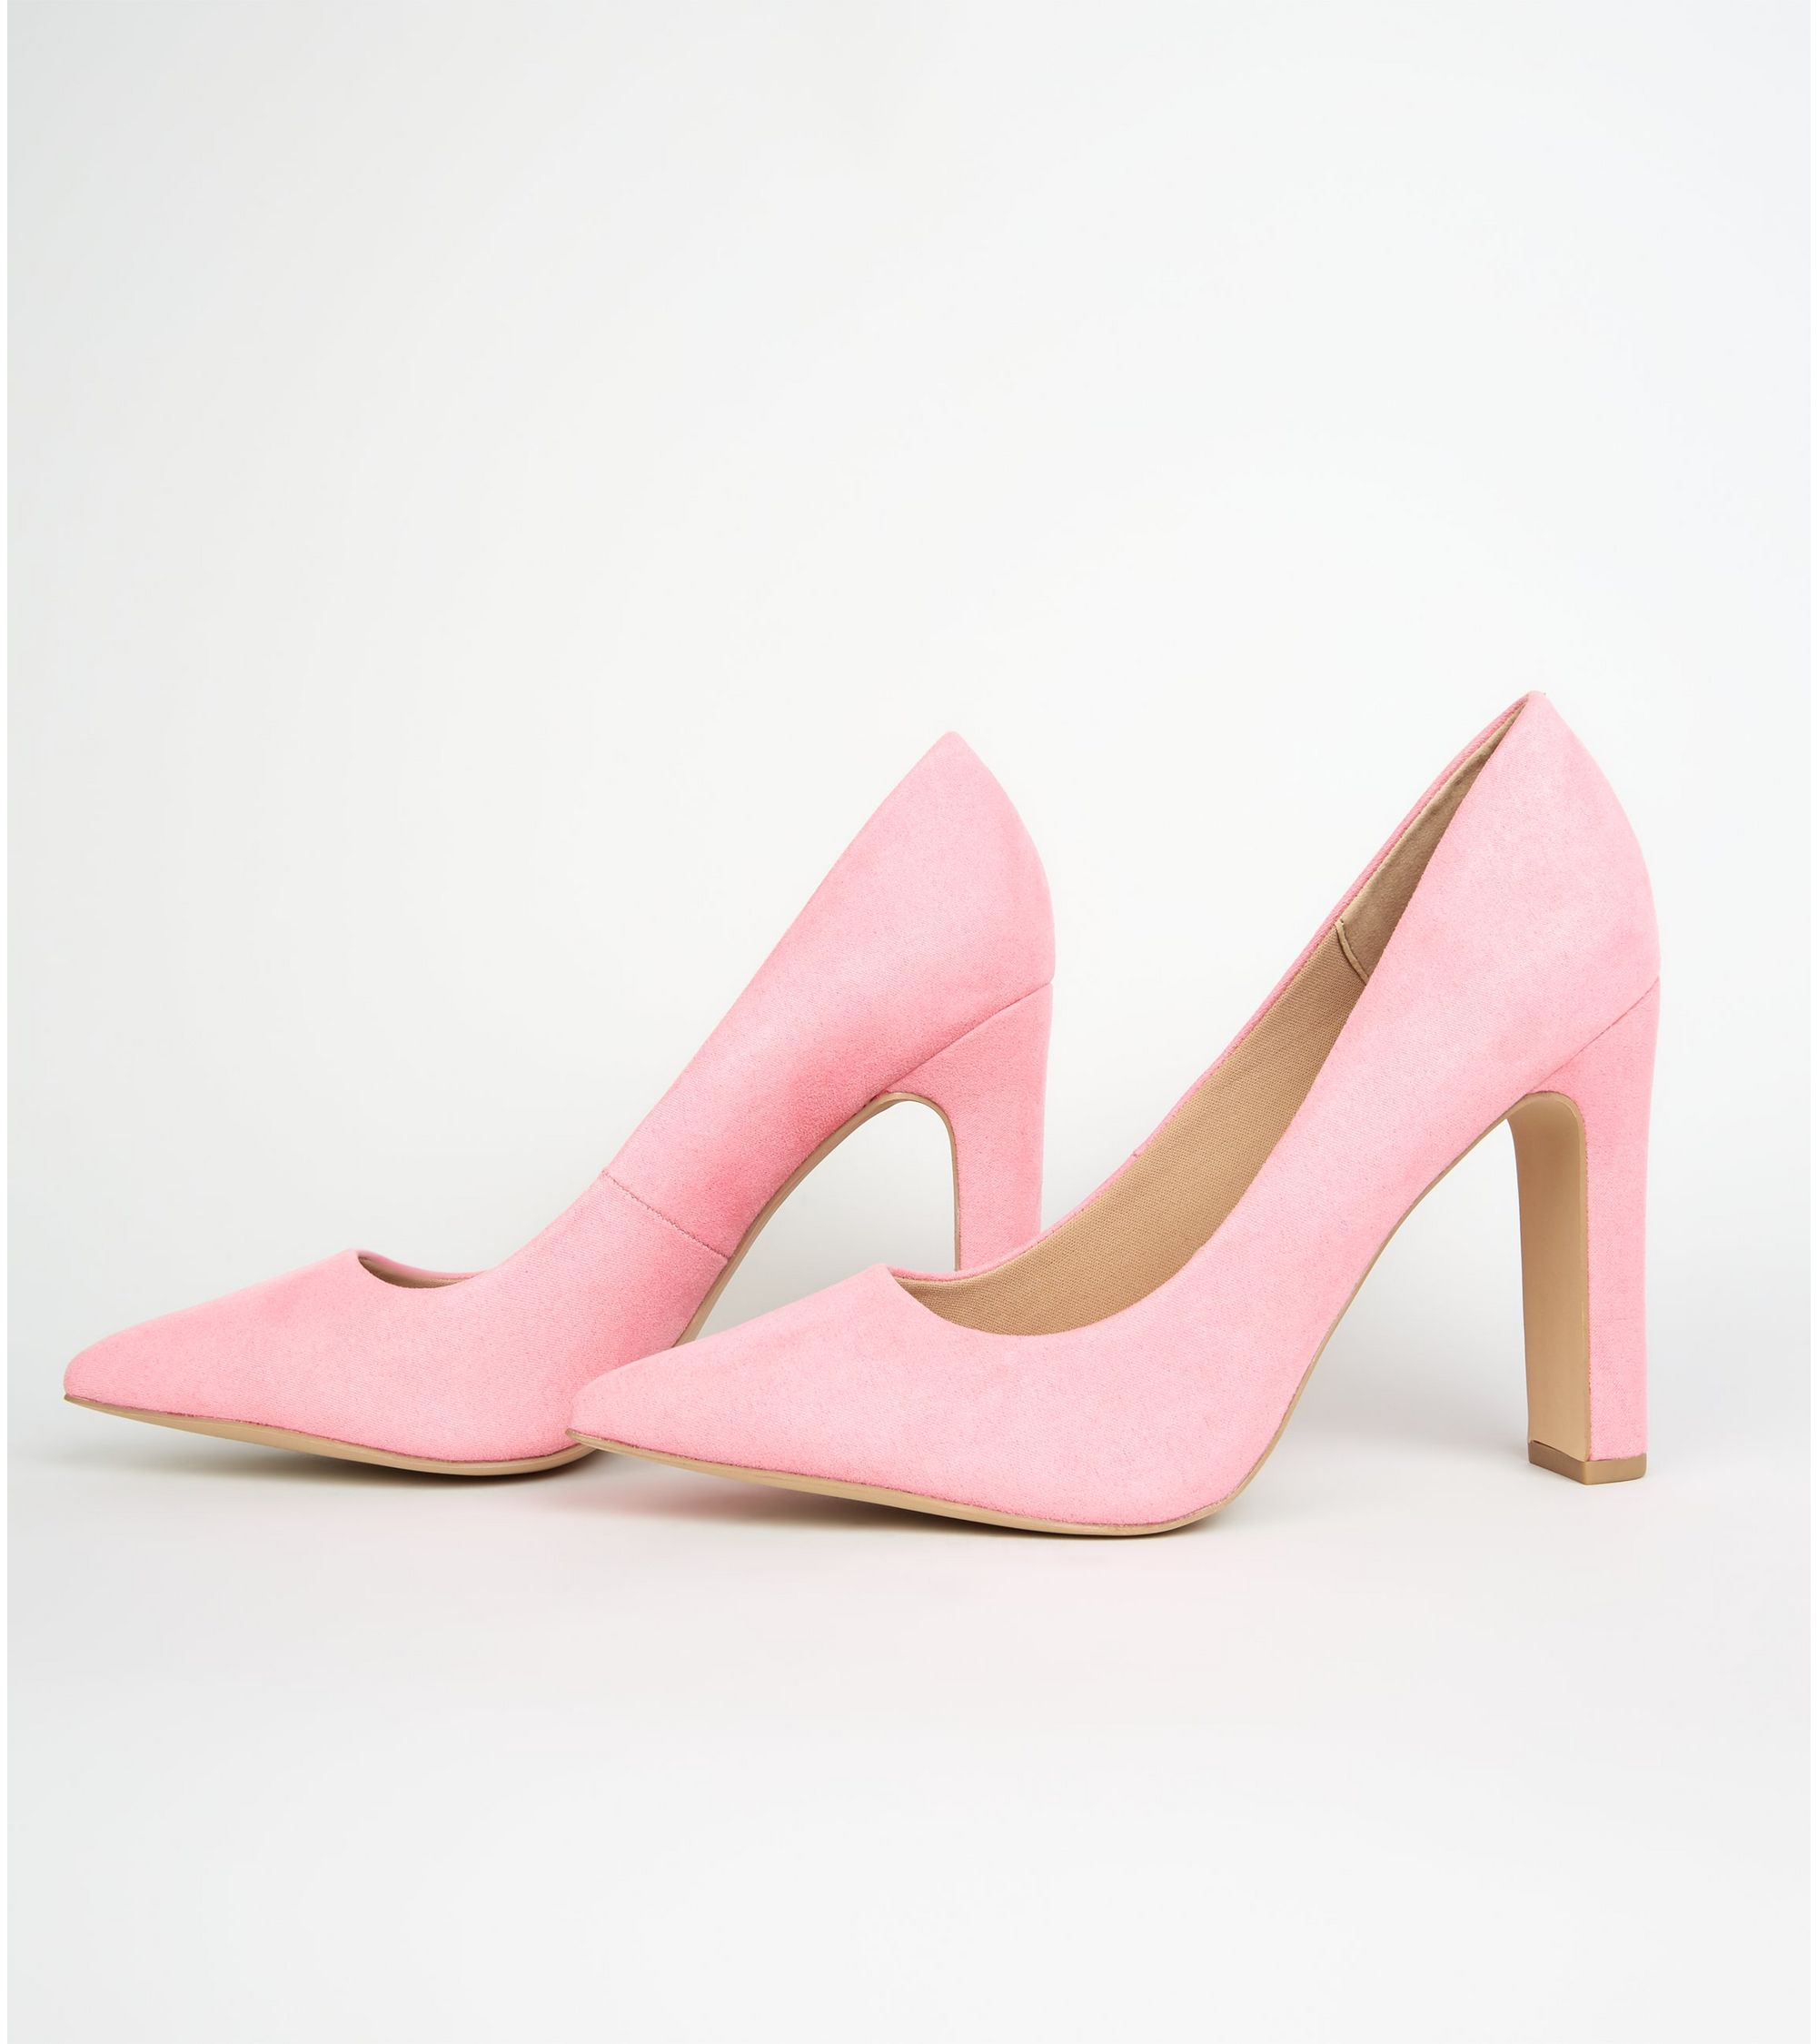 694e8d2ed85 New Look wide fit suedette slim block heel courts at £19.99